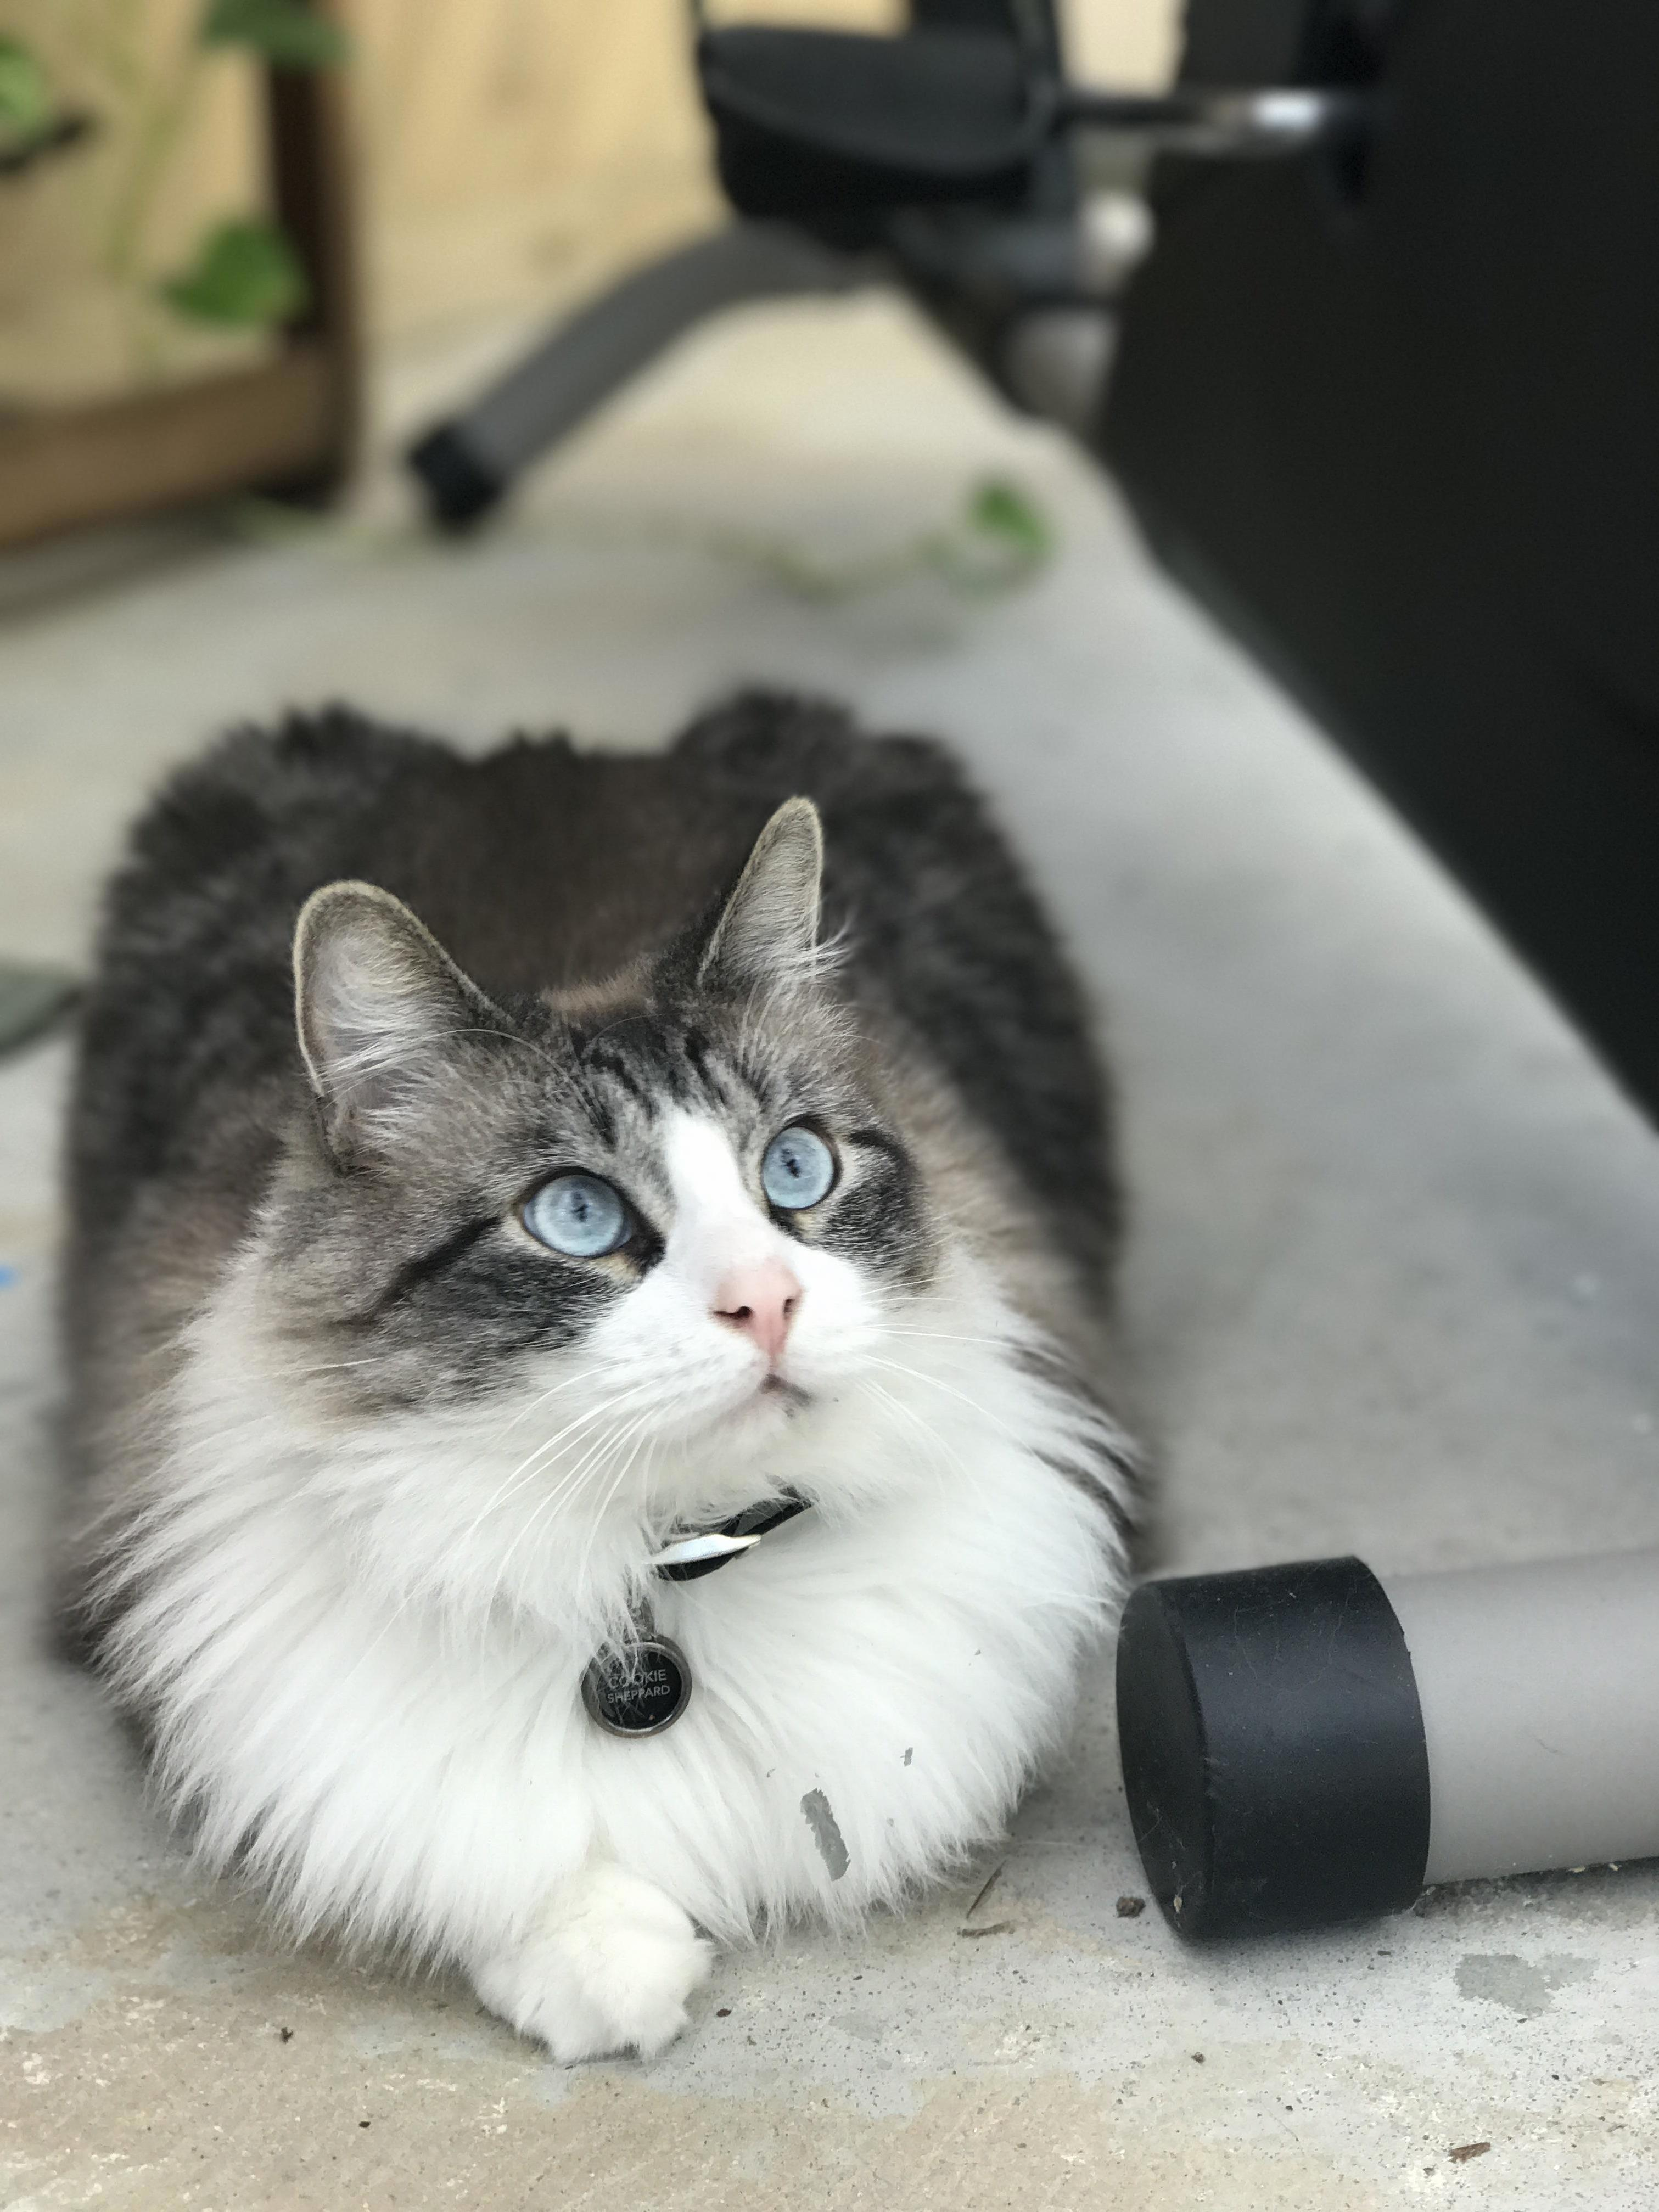 Our bright eyed ragdoll cat cookie